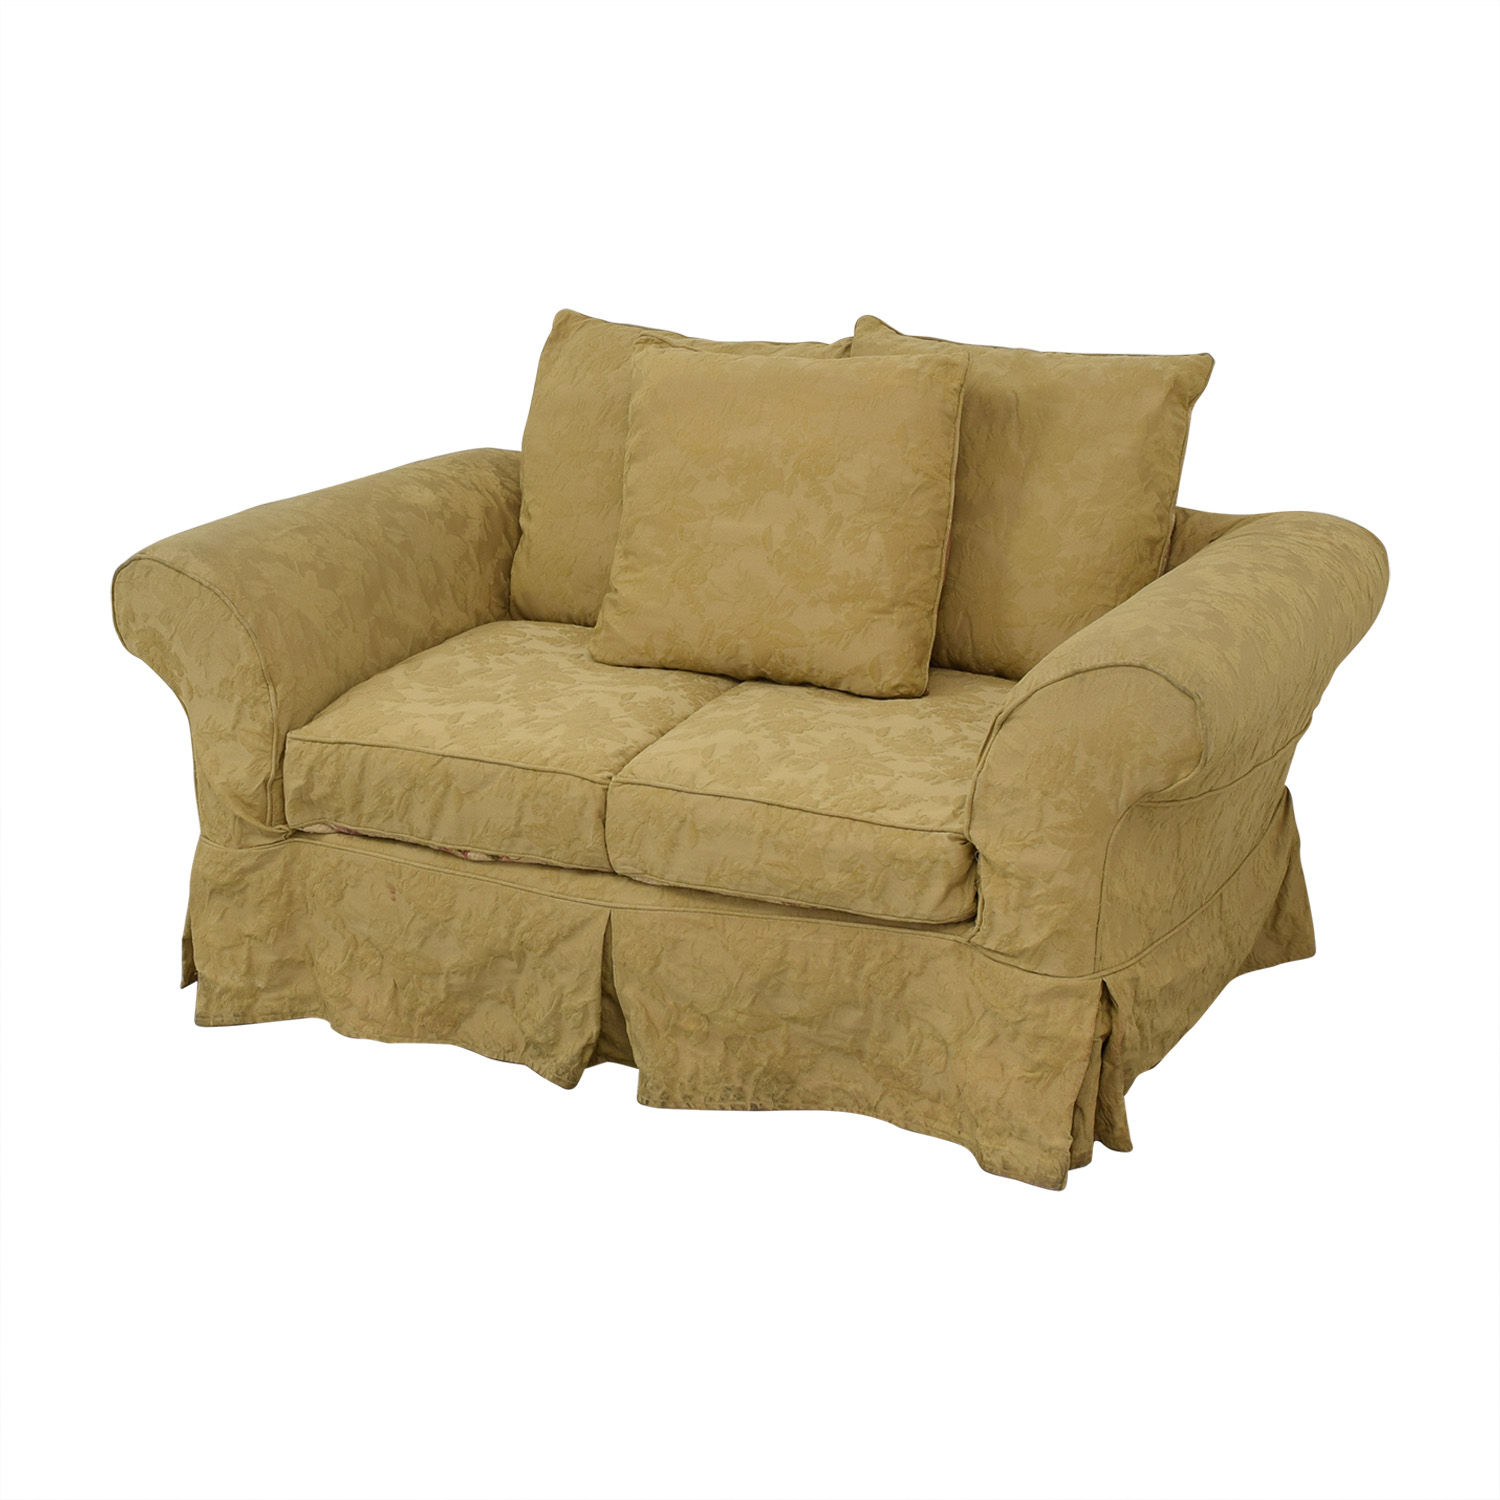 Domain Domain French Country-Style Loveseat